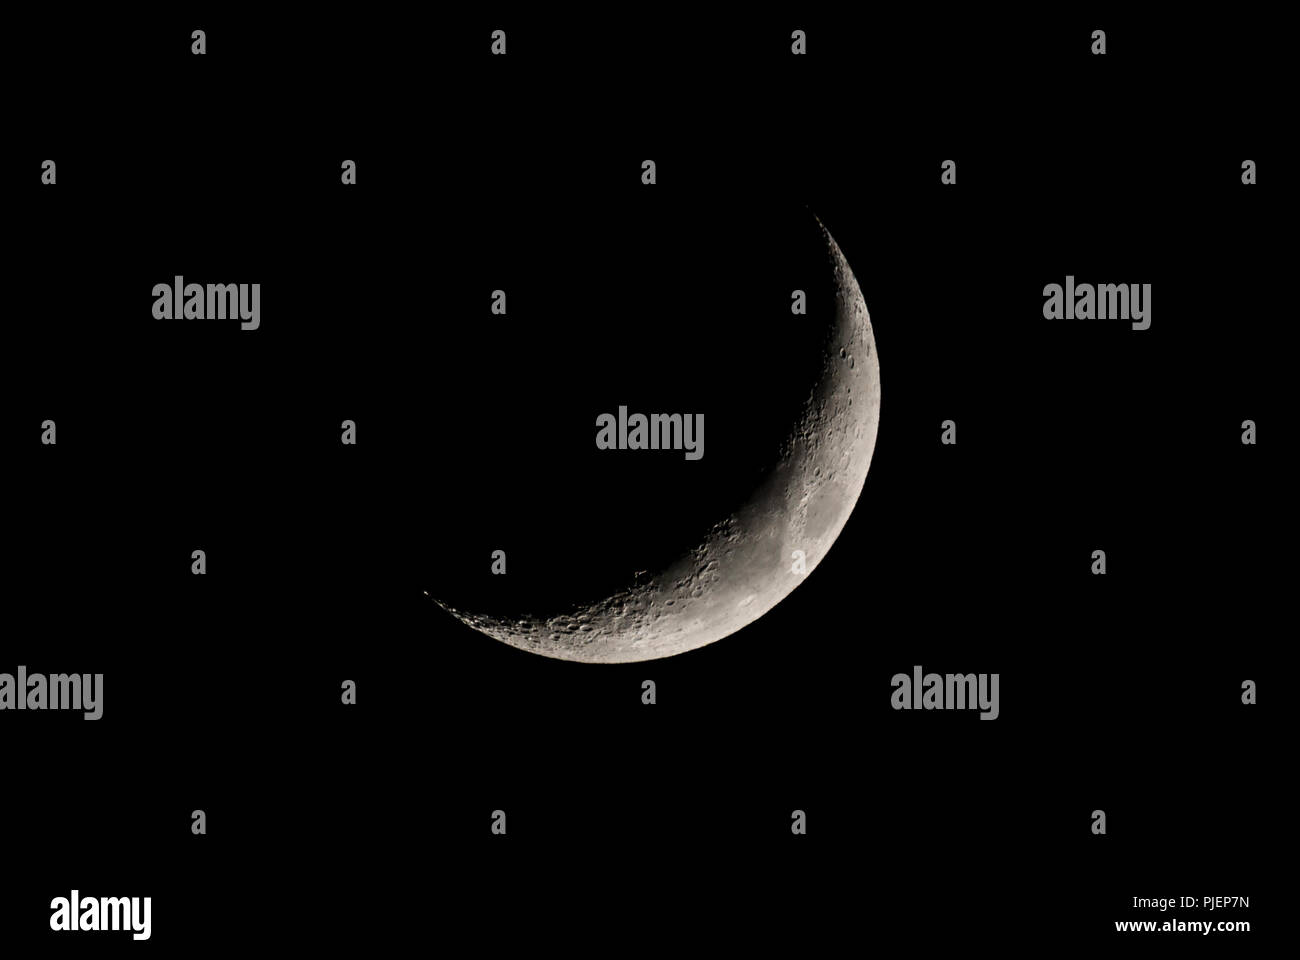 Waxing Crescent moon, 4 days old, in the night sky. New moon. Young moon. - Stock Image